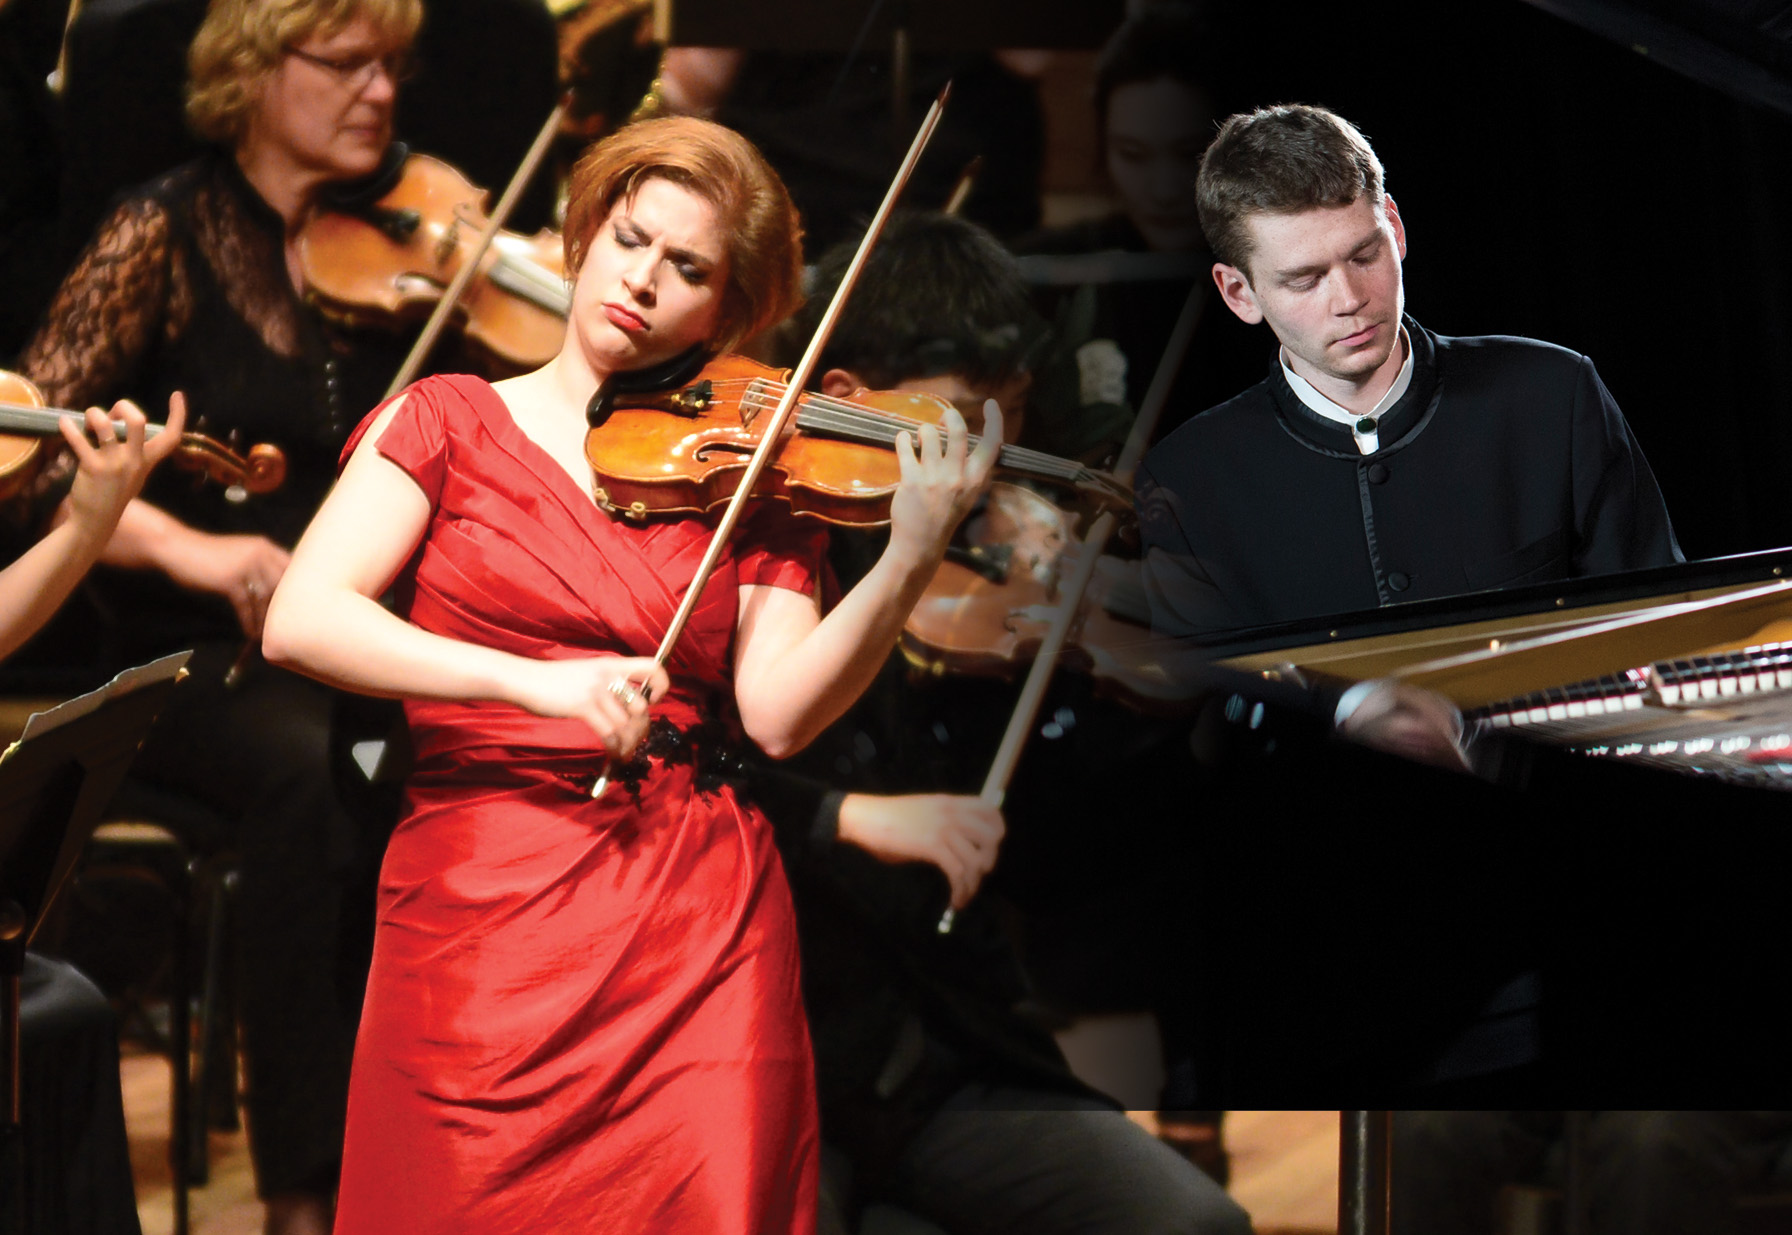 Michael Hill winner Ioana Cristina Goicea (violin) with Andrey Gugnin (piano)